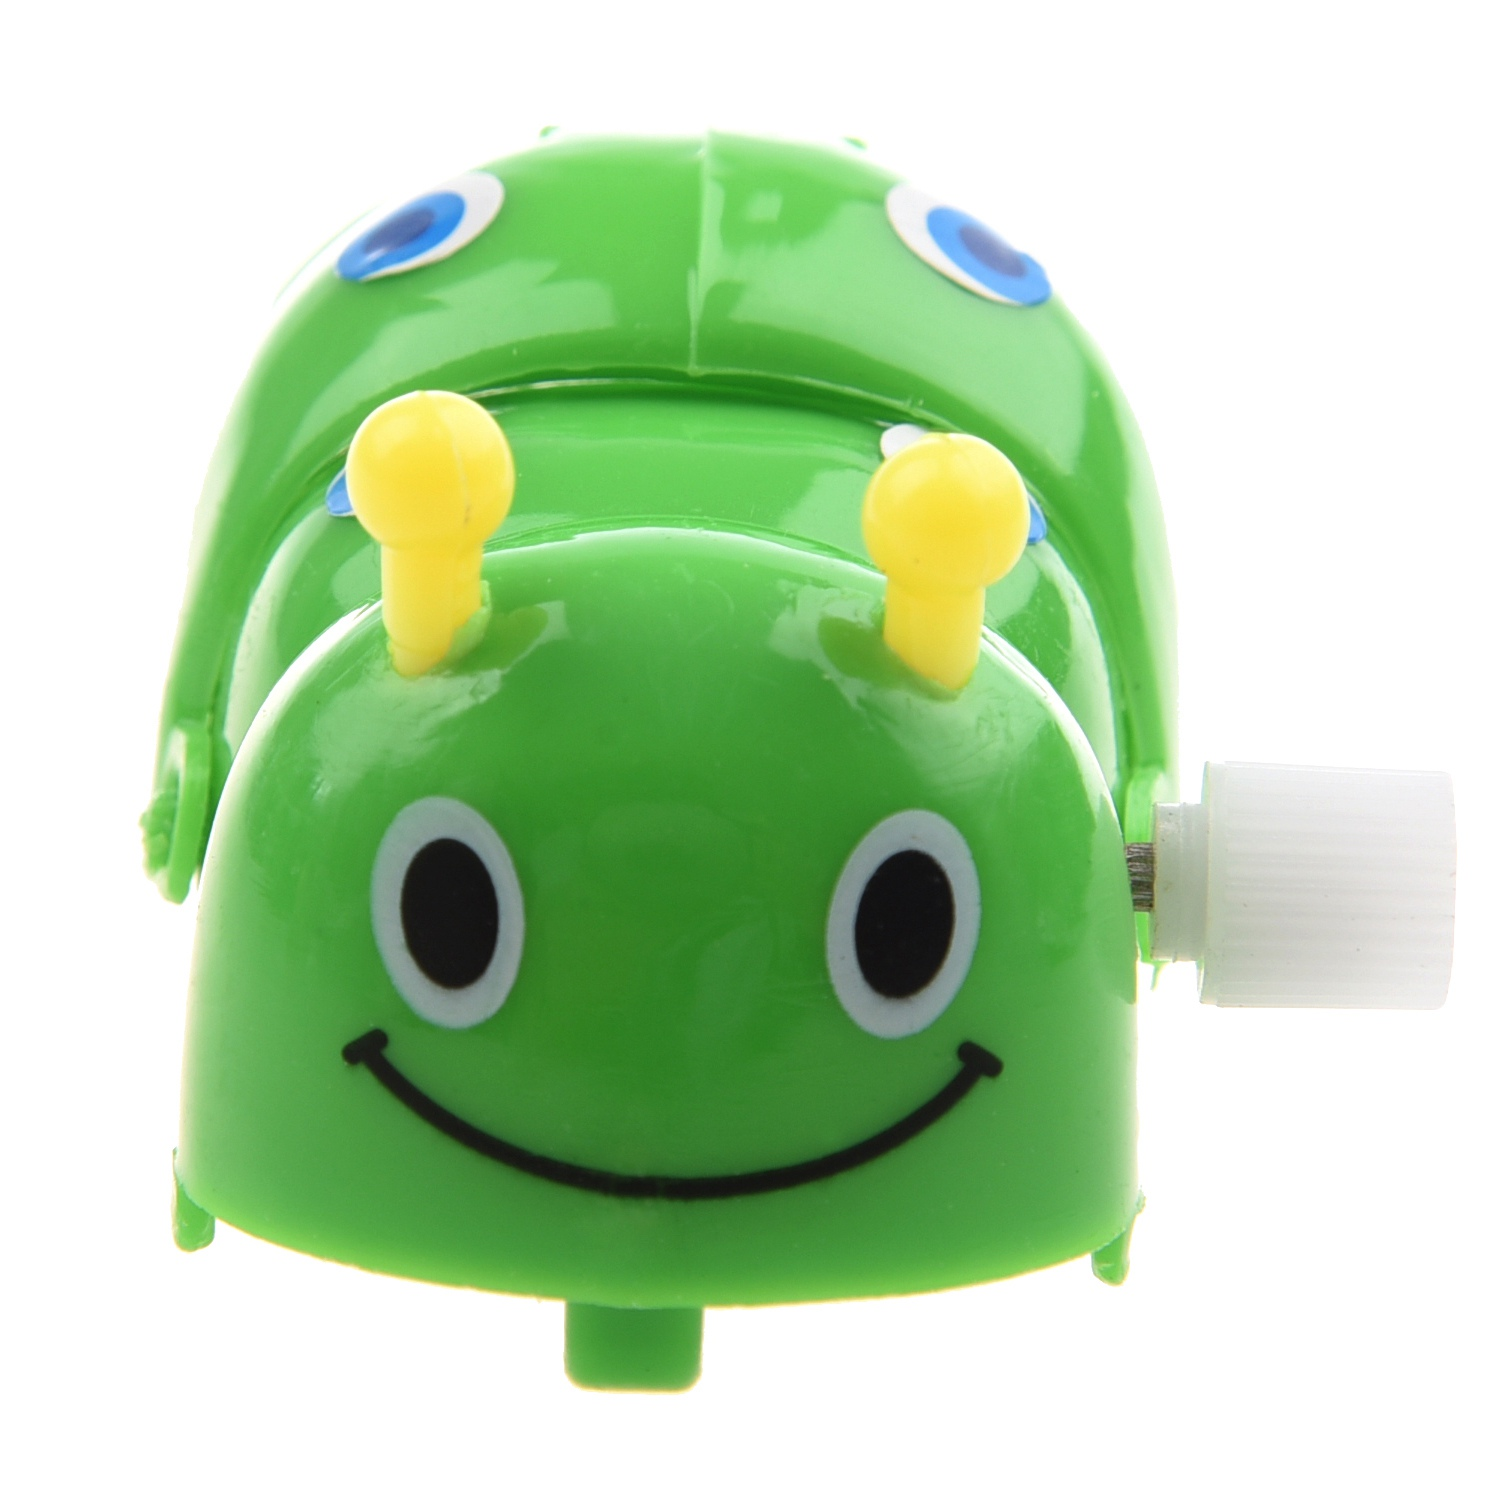 Toys For Spring : New children clockwork spring toy green plastic cartoon